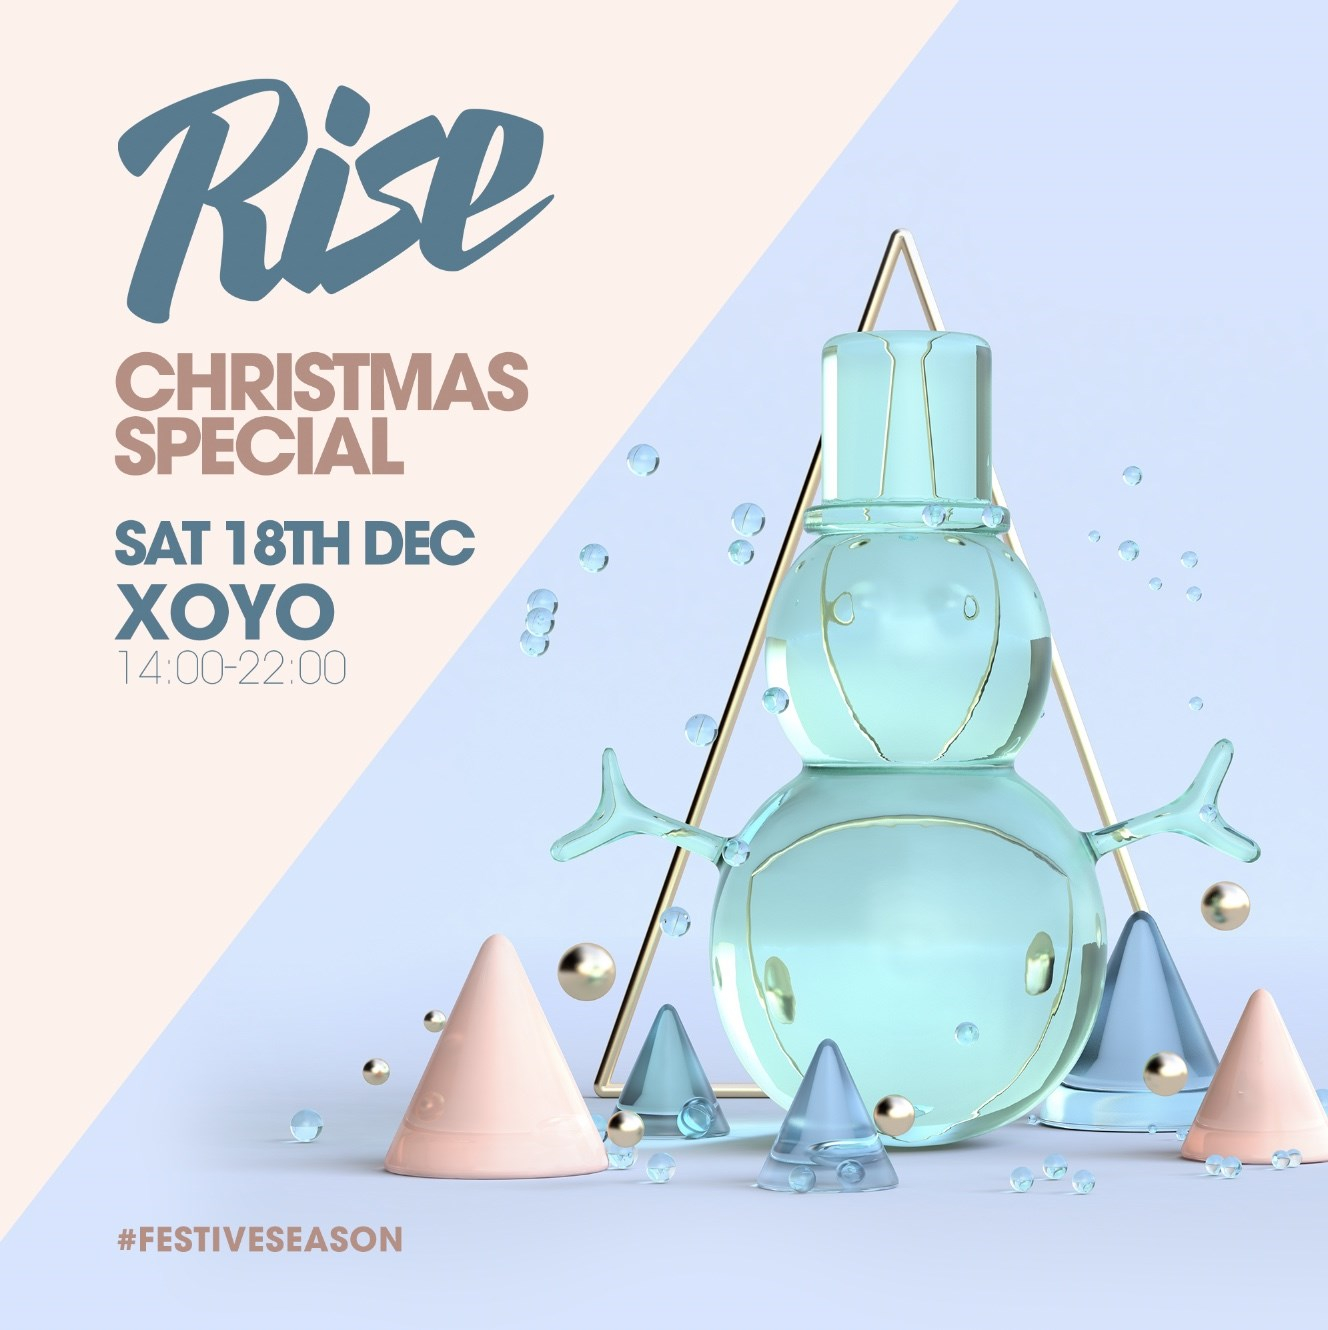 Rise: Christmas Special - Flyer front